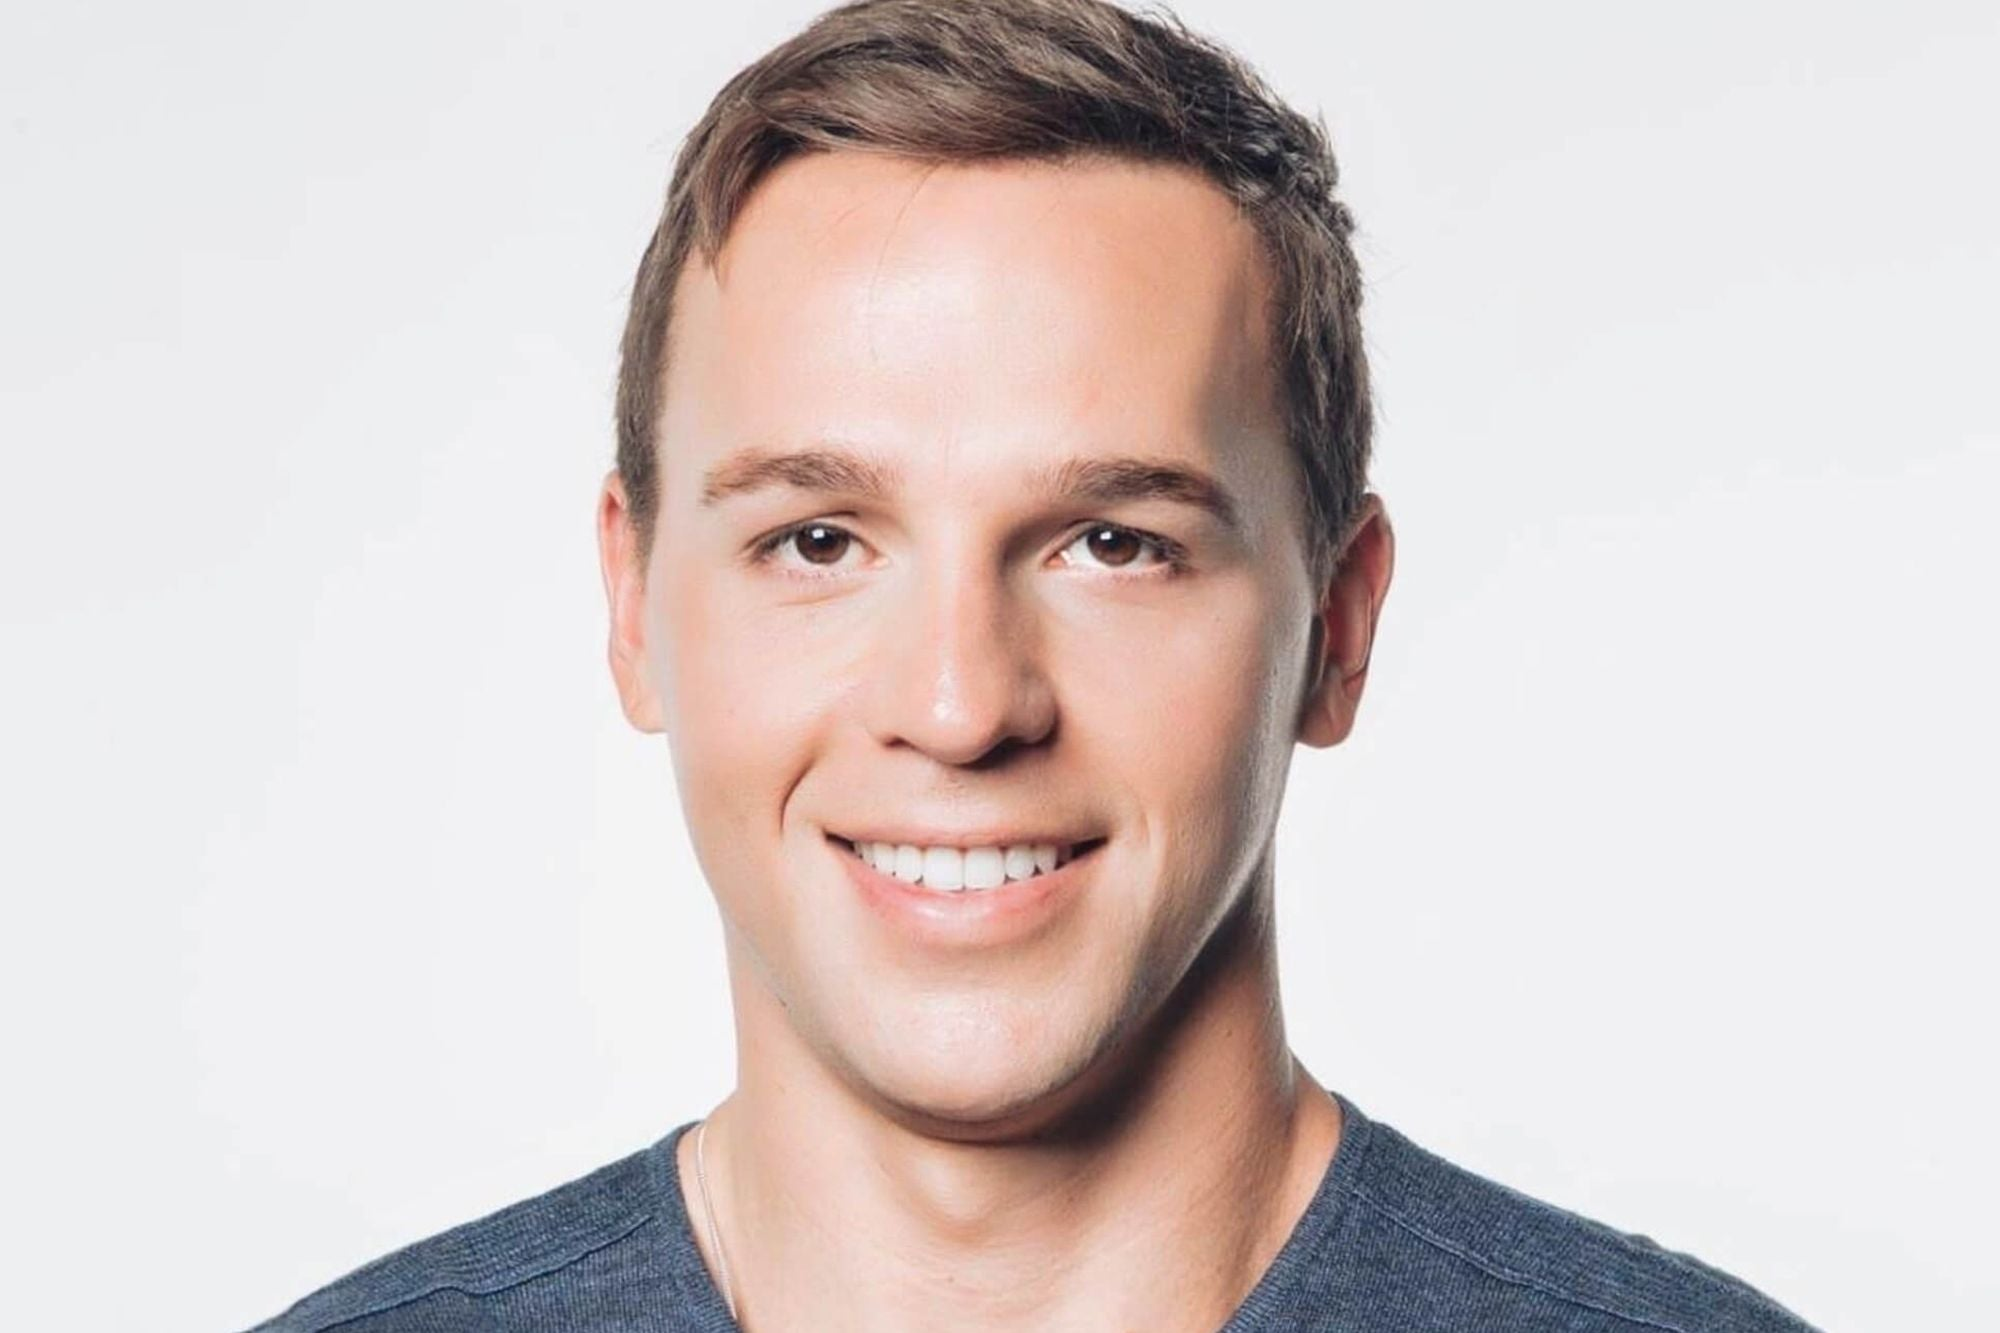 Self-Made Millionaire Matt Clark Shares How to Build Your Own Ecommerce Company